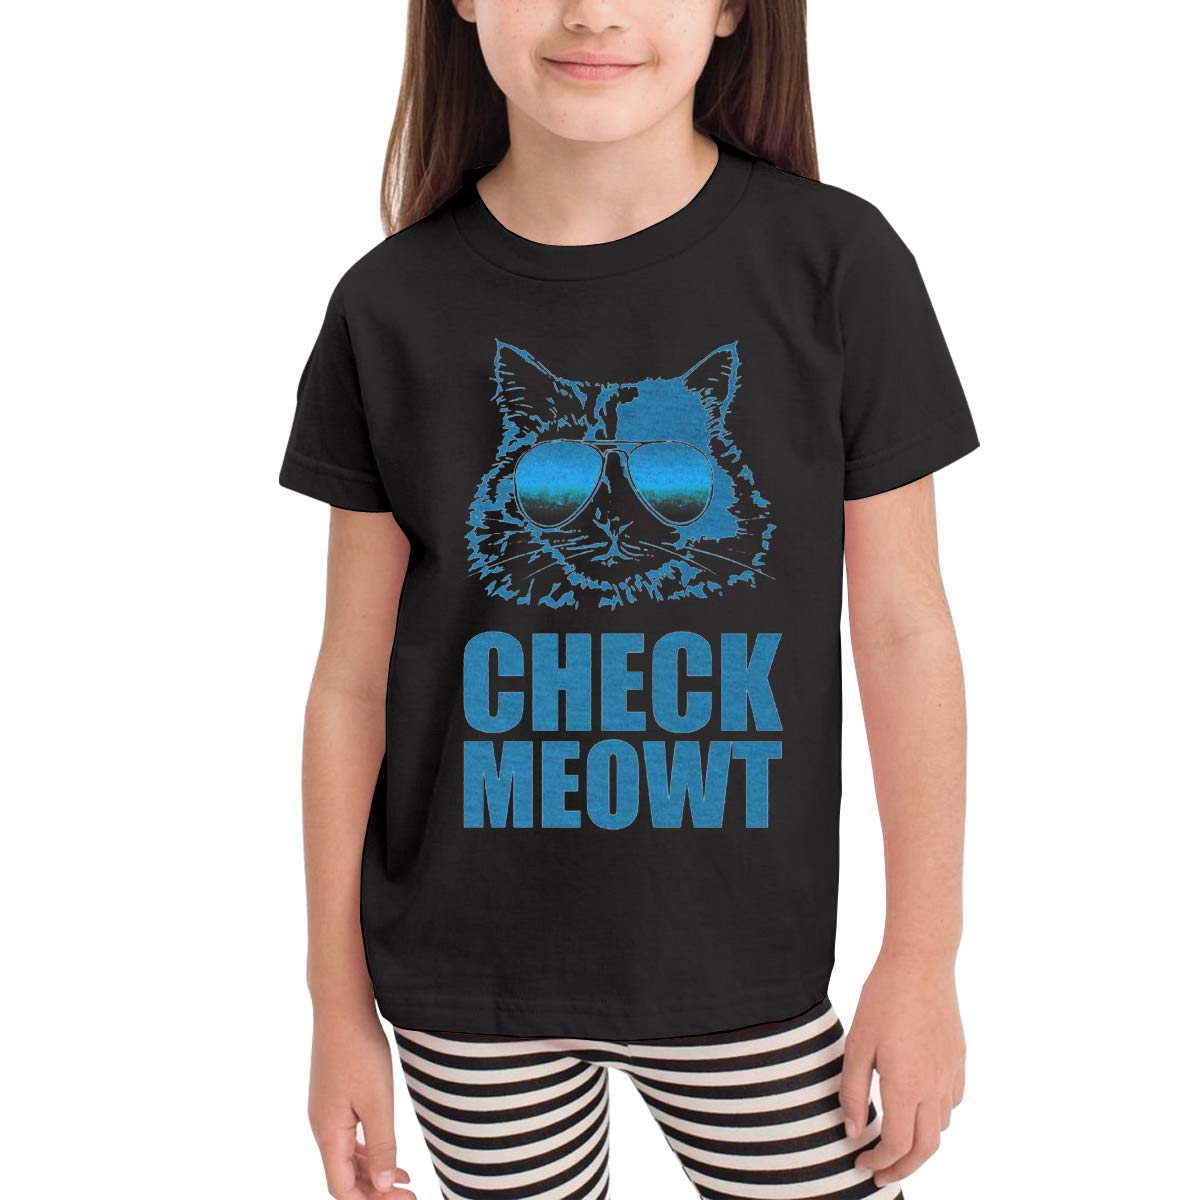 Onlybabycare Check Meowt 100/% Cotton Toddler Baby Boys Girls Kids Short Sleeve T Shirt Top Tee Clothes 2-6 T